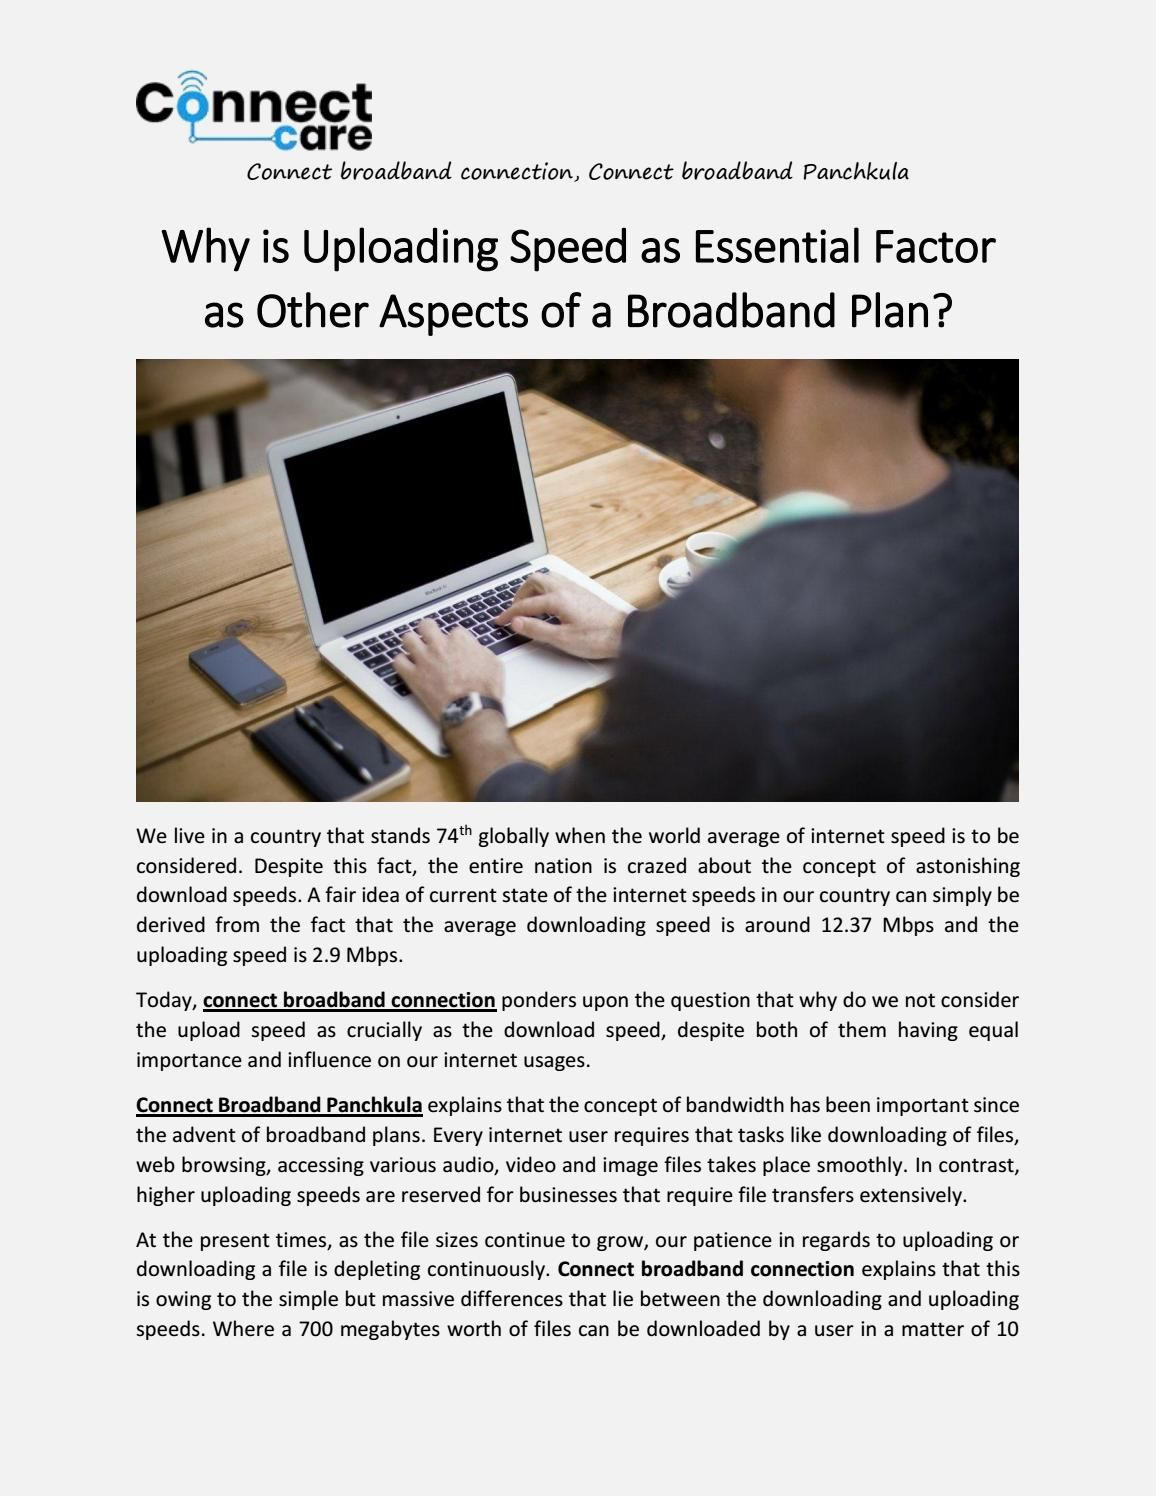 Why is uploading speed as essential factor as other